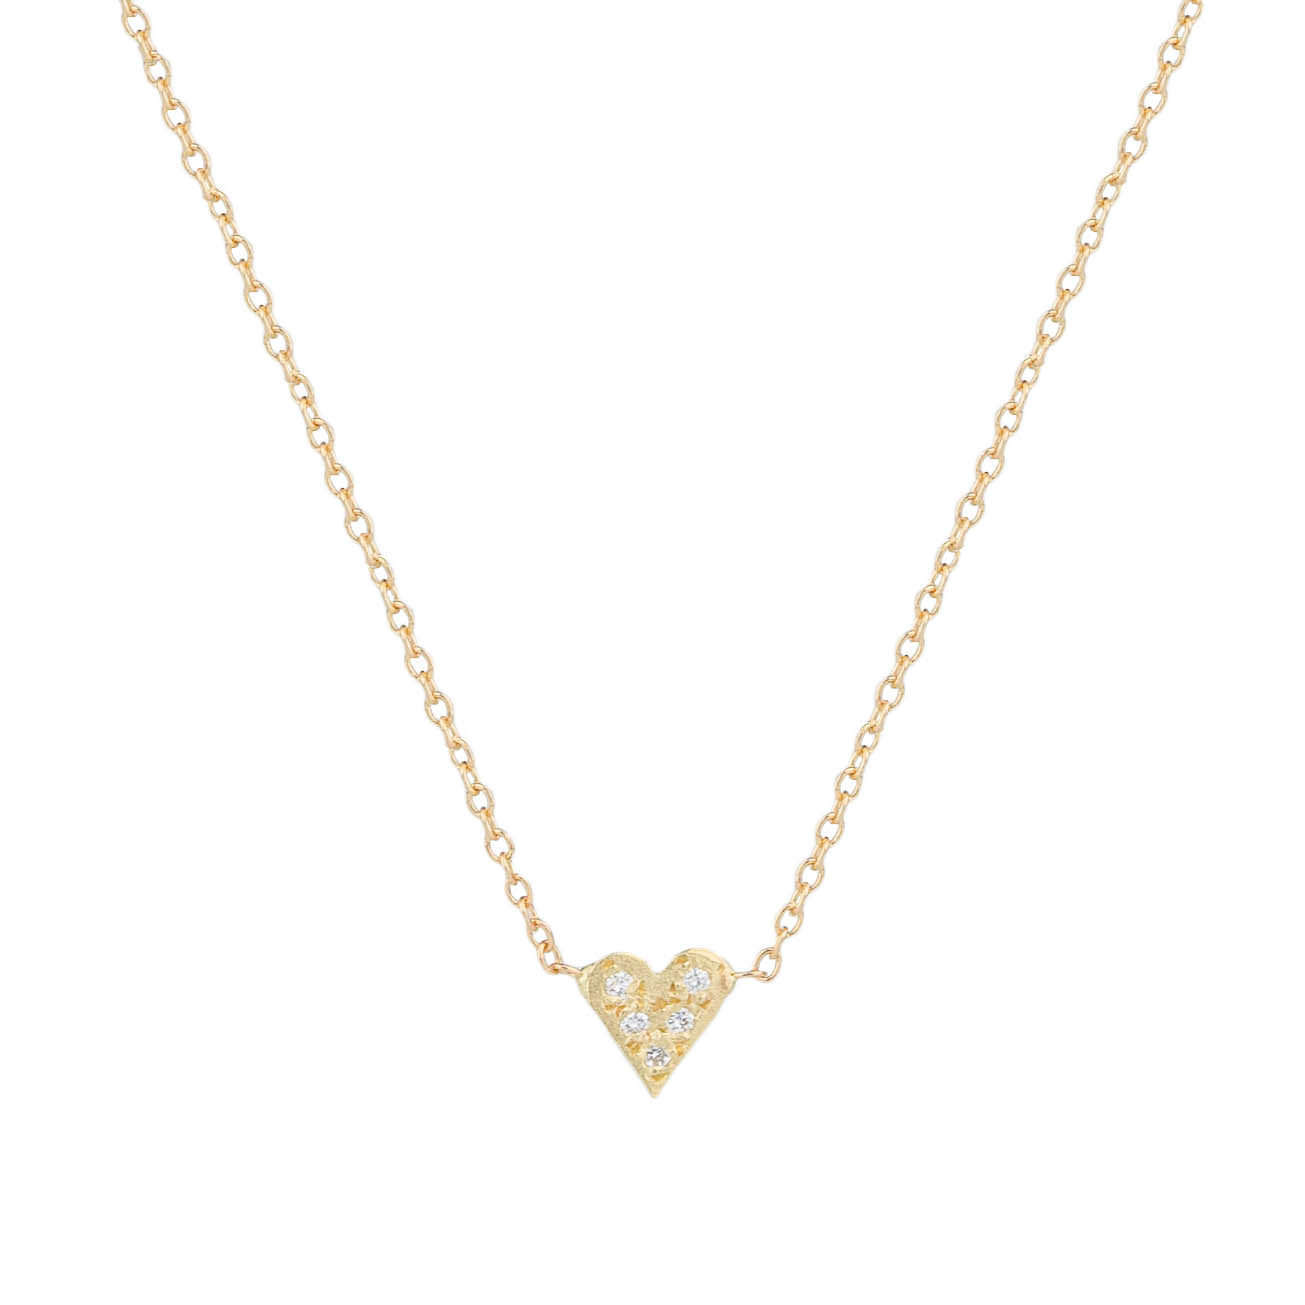 Tiny Pave Heart Necklace